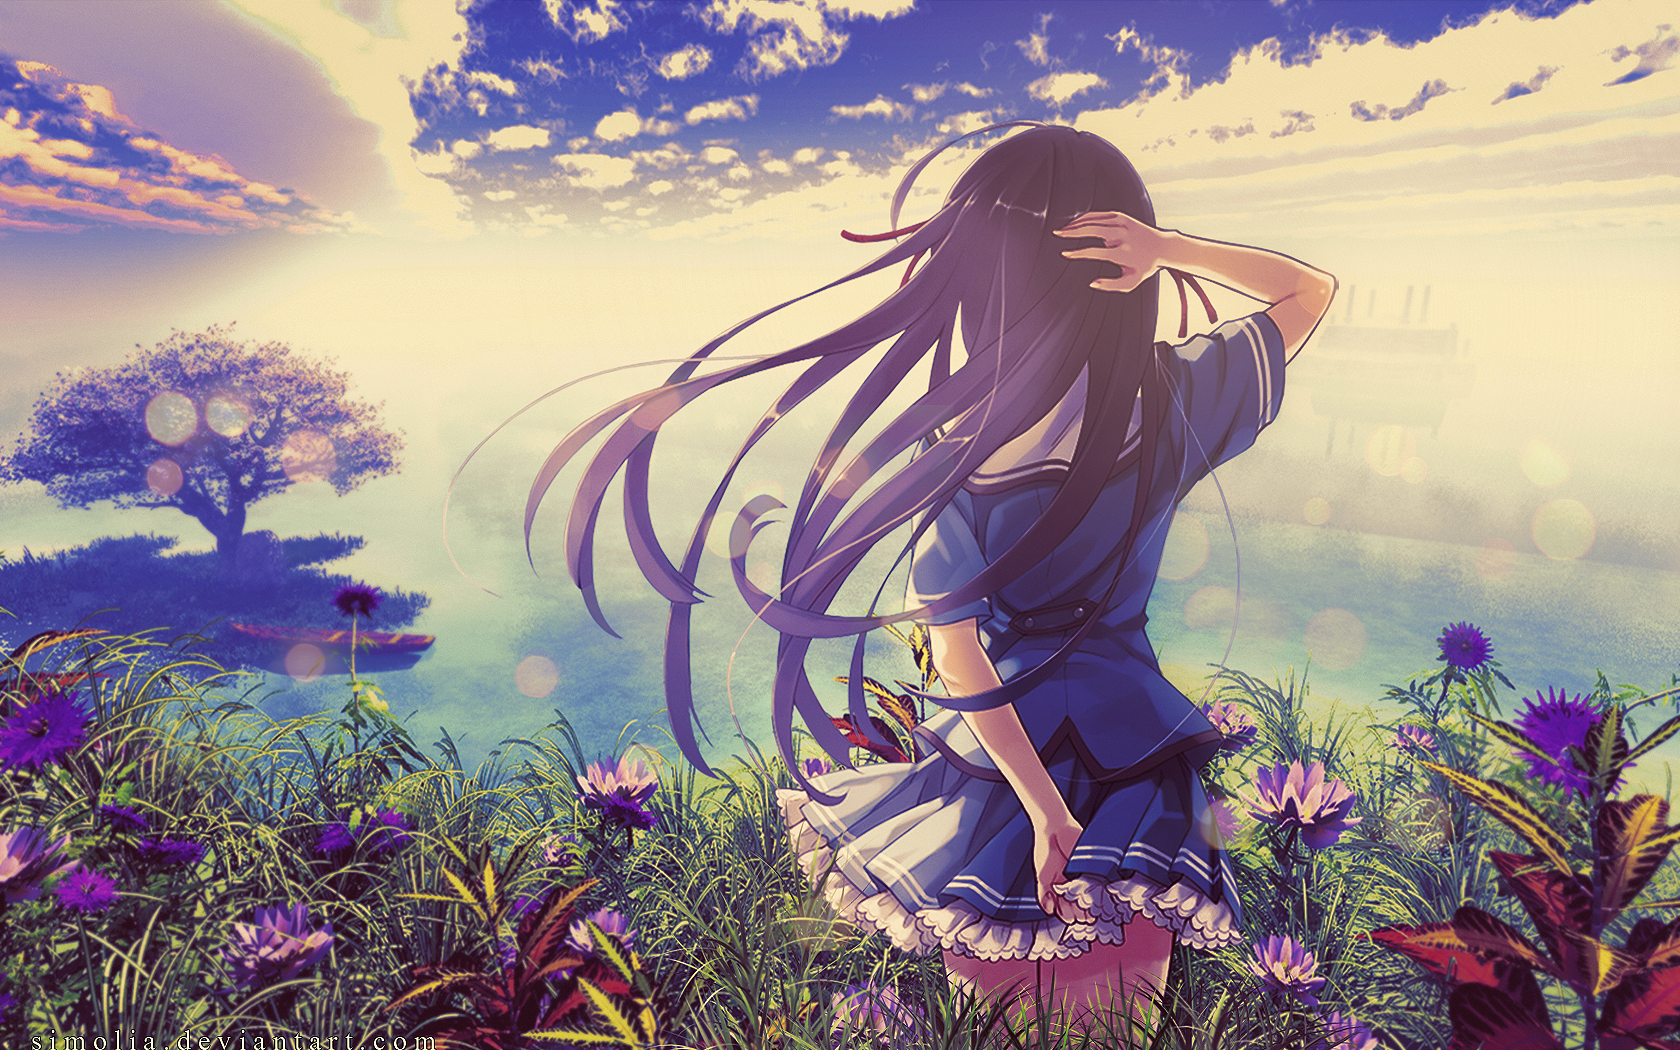 Anime desktop wallpapers wallpapersafari - Beautiful girl anime wallpaper ...